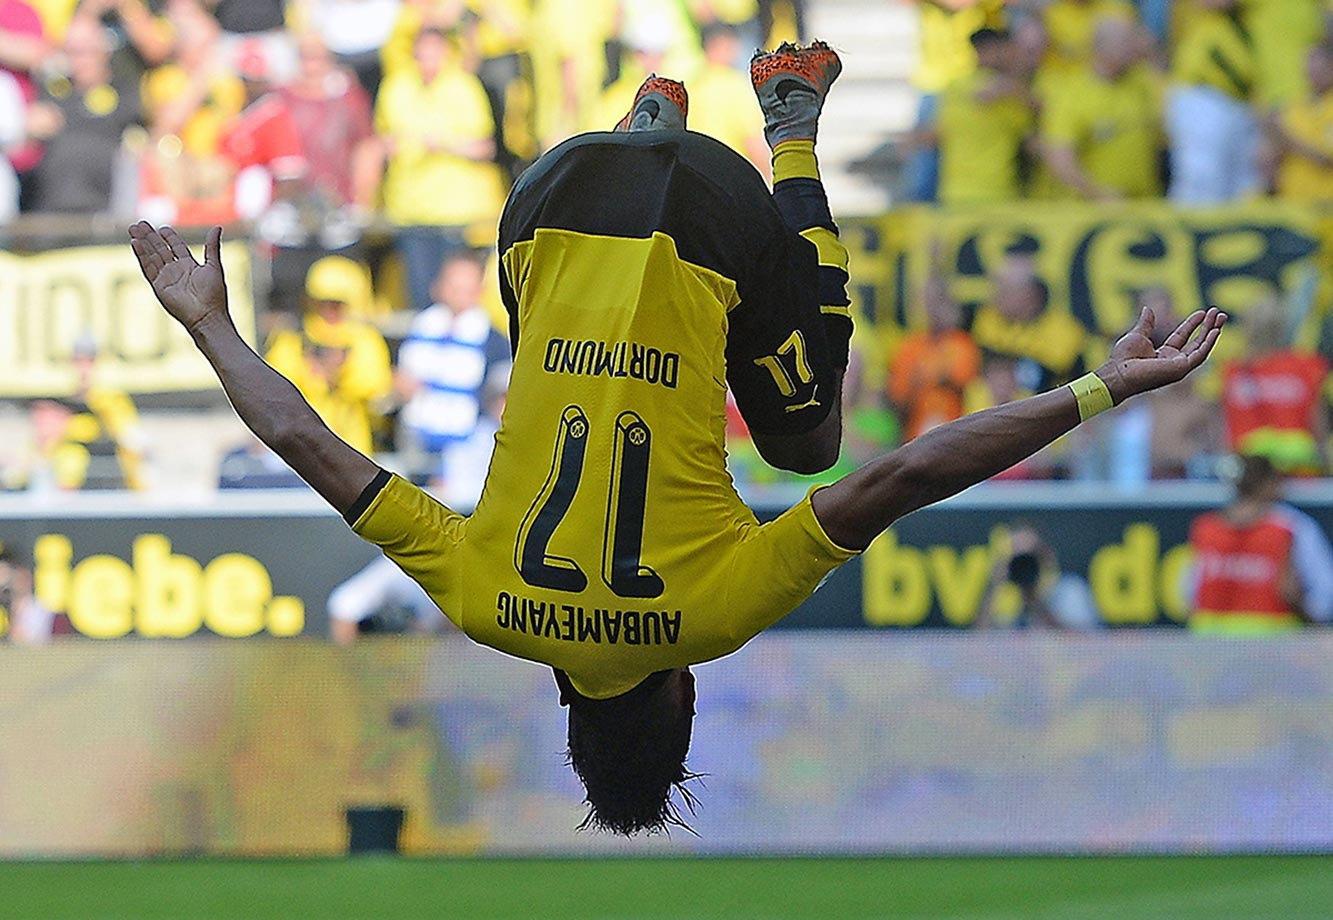 Pierre Emerick Aubameyang celebrates his goal during a game between Borussia Dortmund and Hertha Berlin.